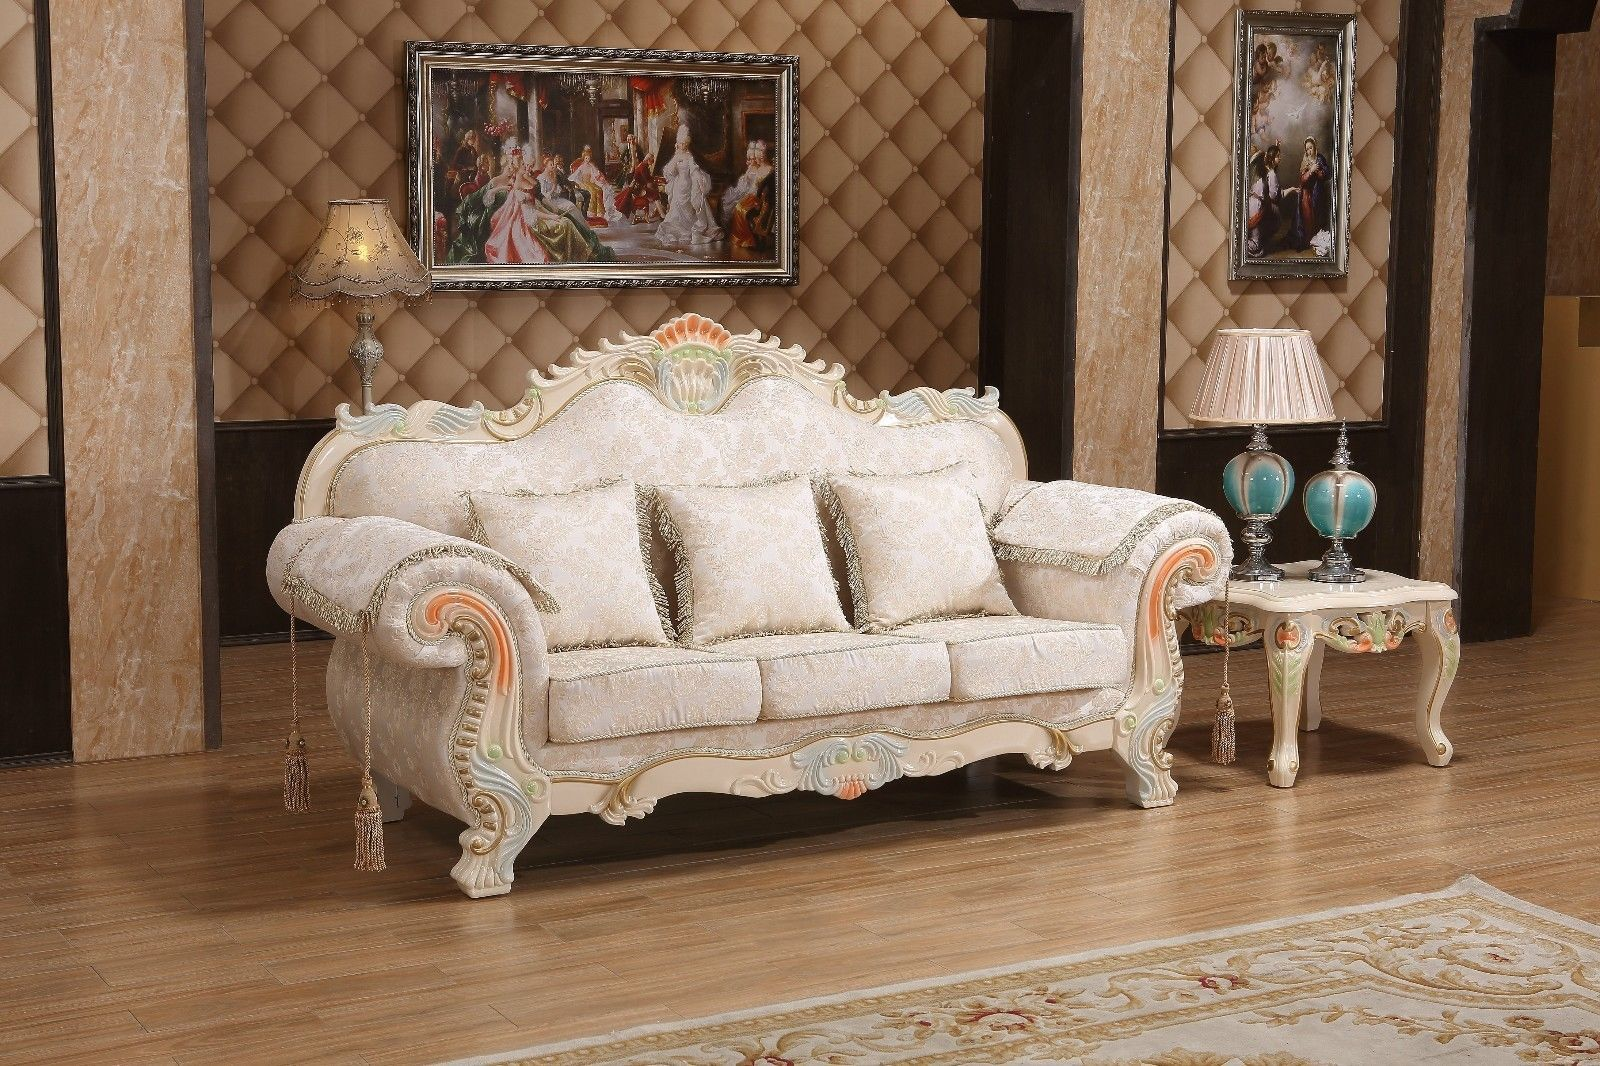 Meridian 657 Living Room Sofa Set 3pc. Pink Fabric Traditional Style